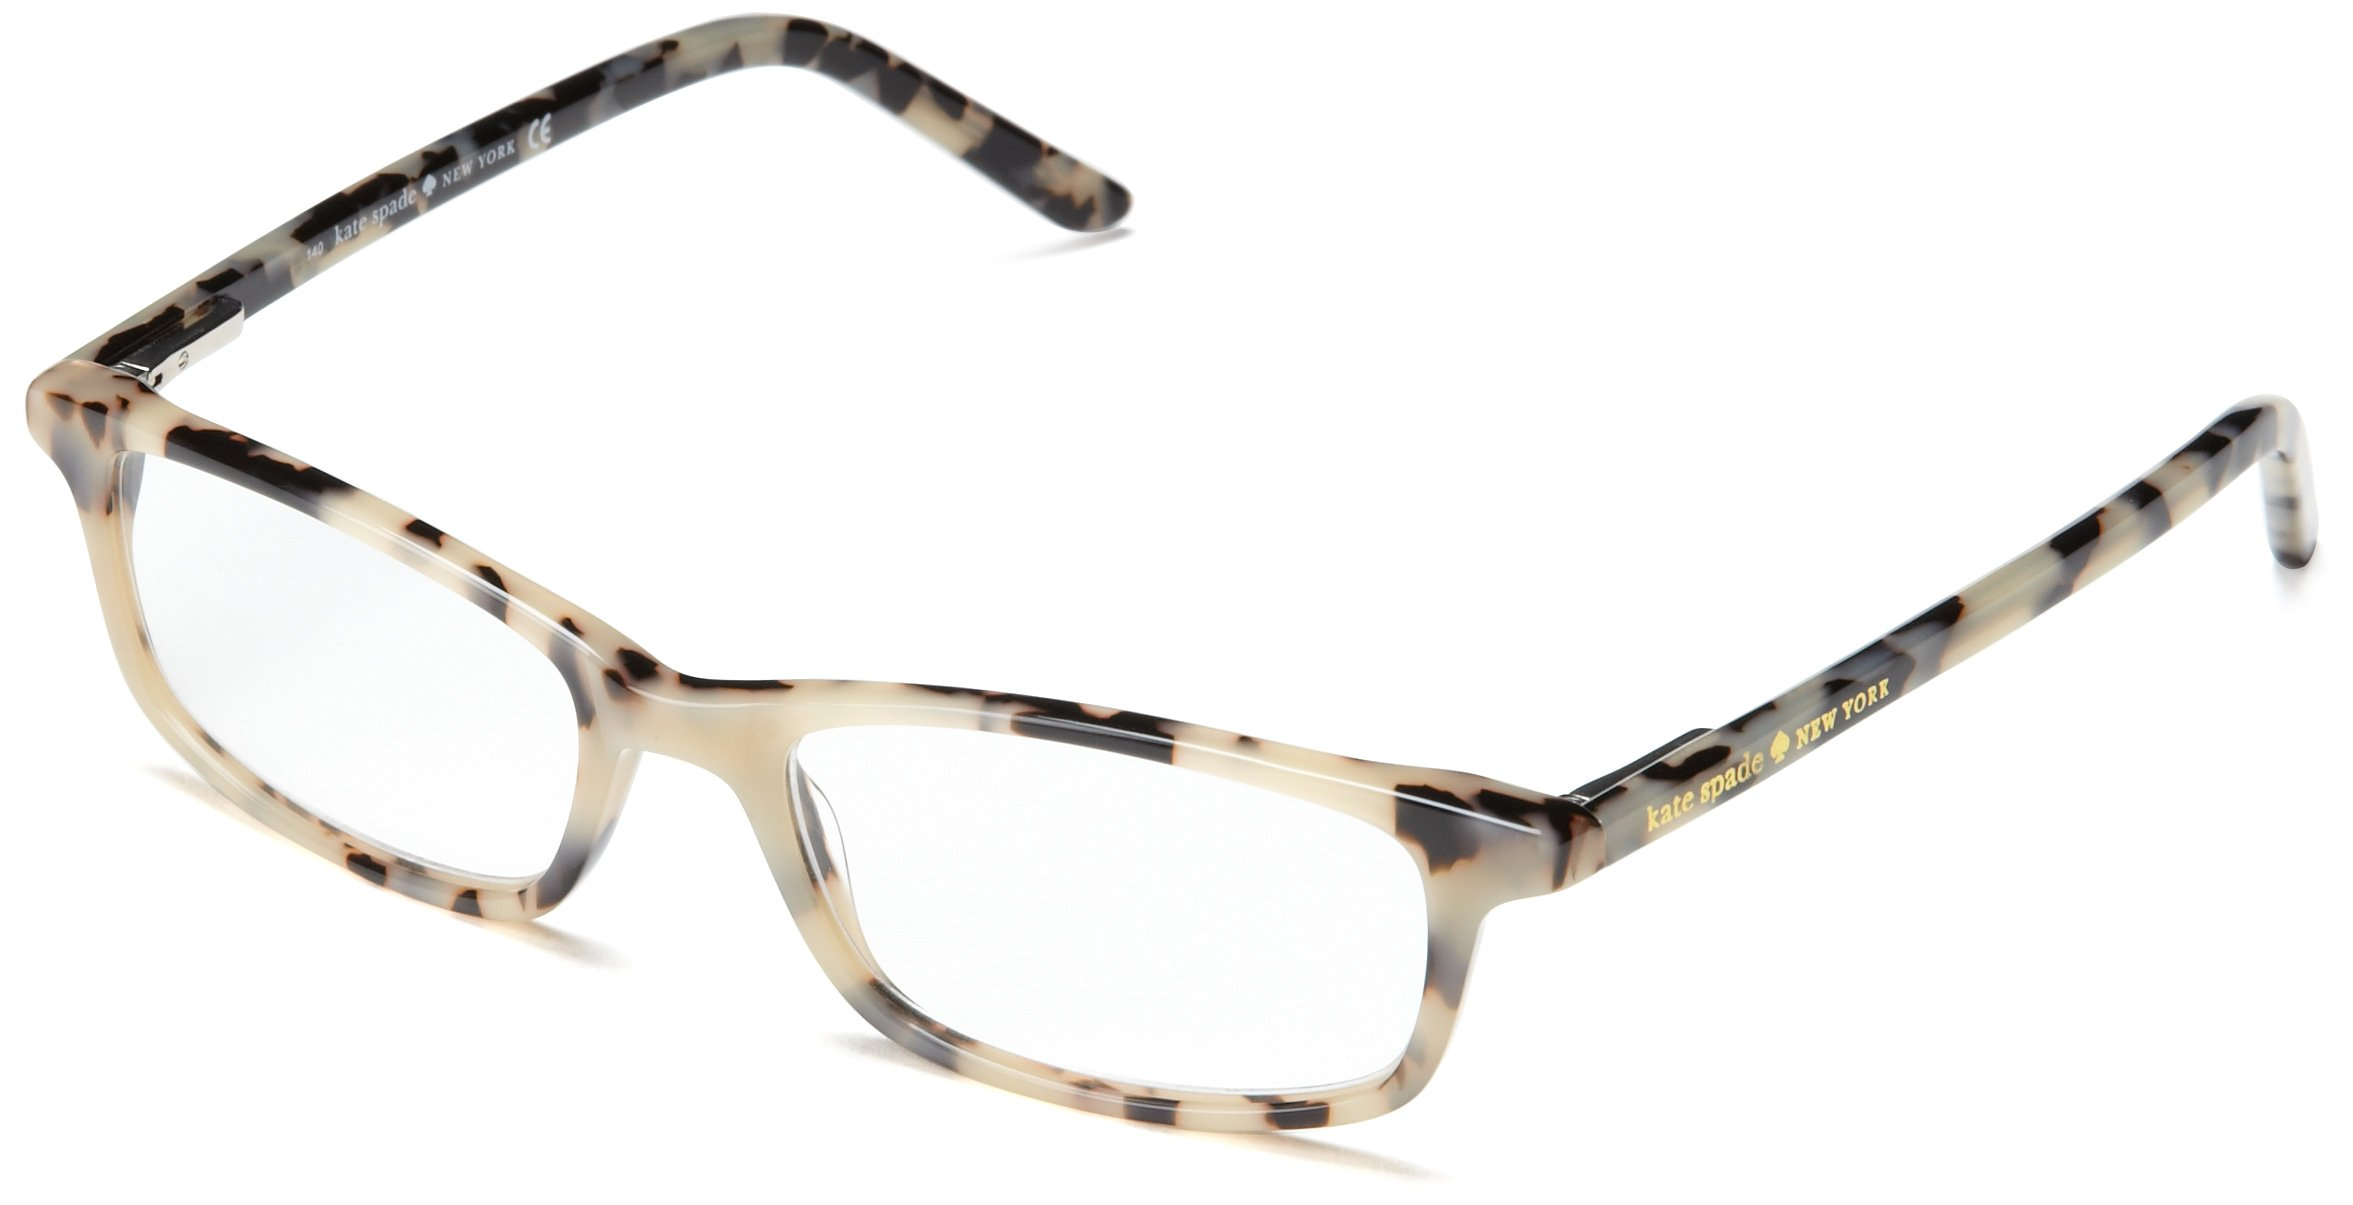 Kate Spade Women's Jodie Rectangular, Milky Tortoise, 50 mm 1.5